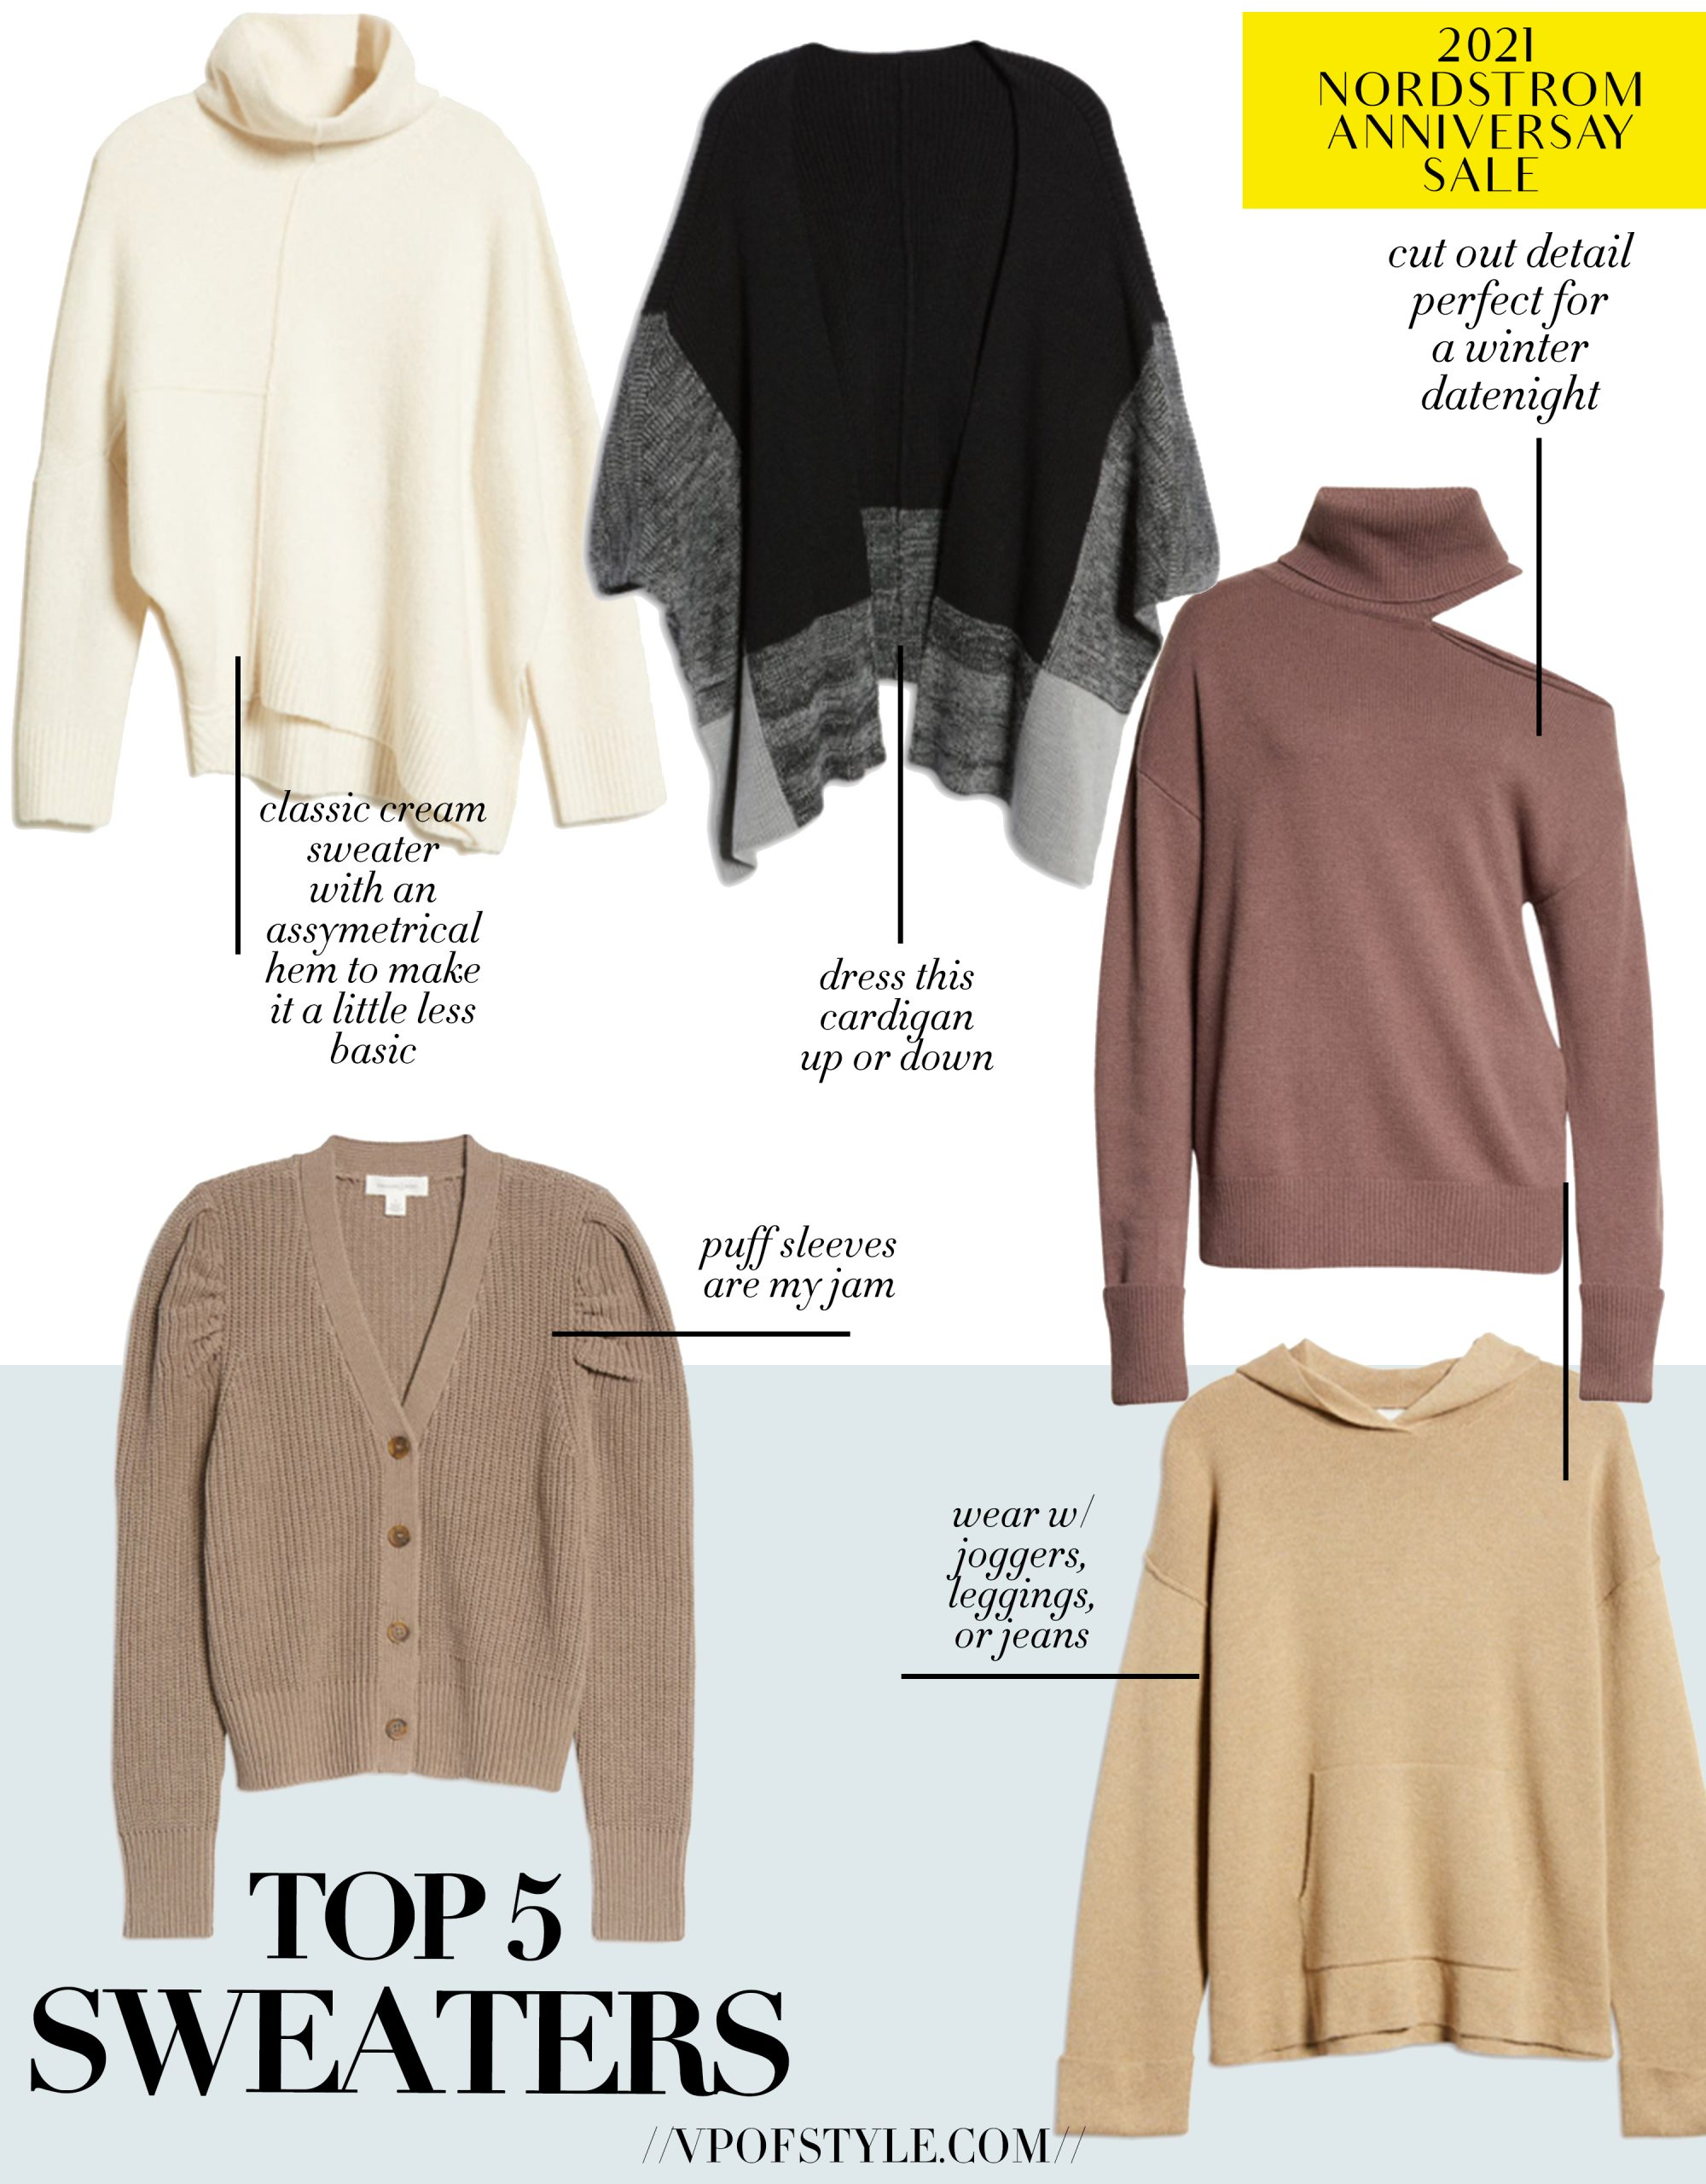 top 5 sweater picks from the Nordstrom Anniversary Sale